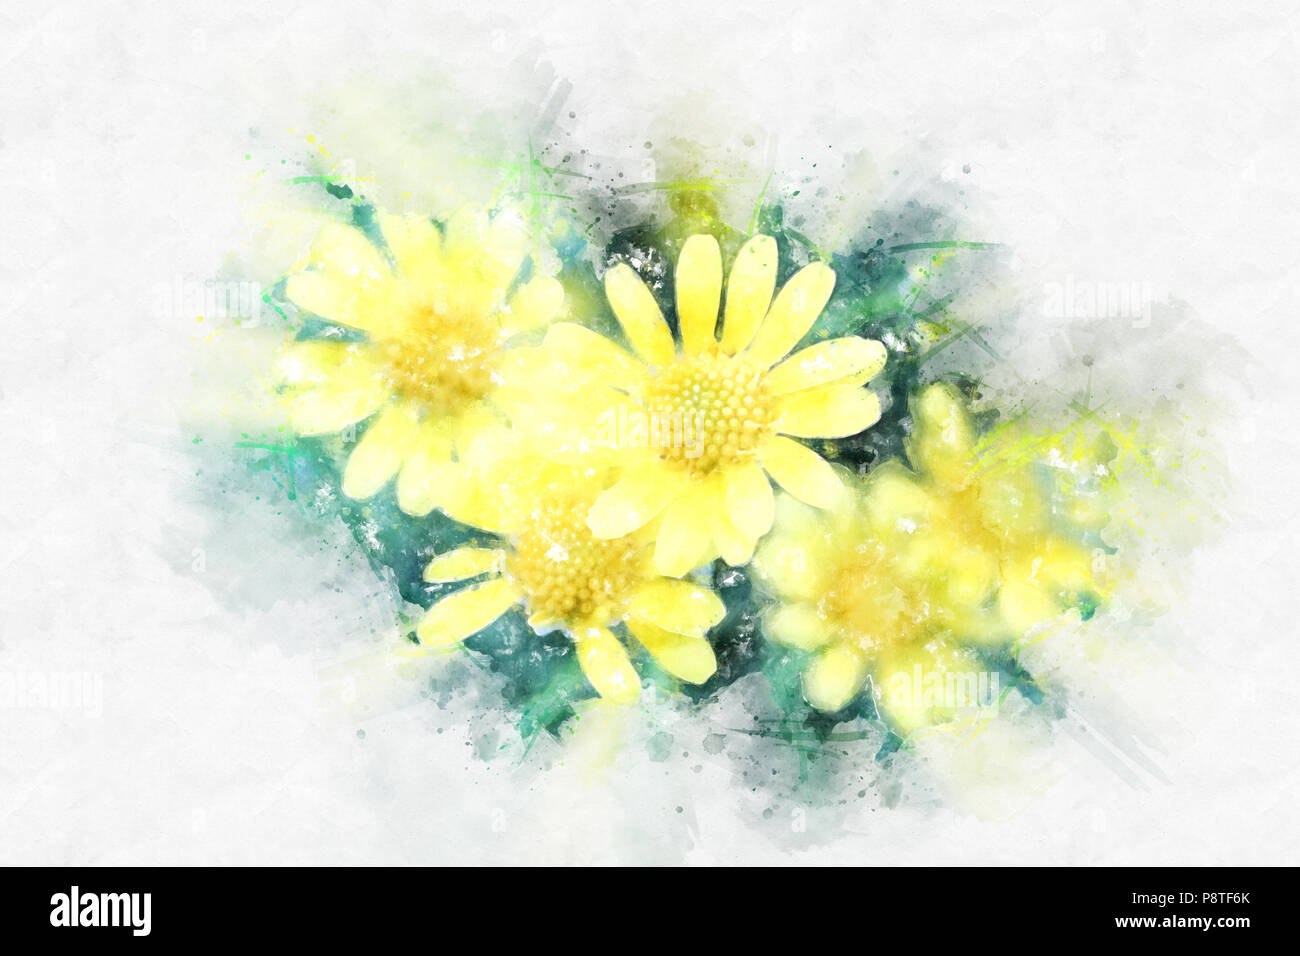 yellow flowers painted watercolor high resolution stock photography and images alamy alamy